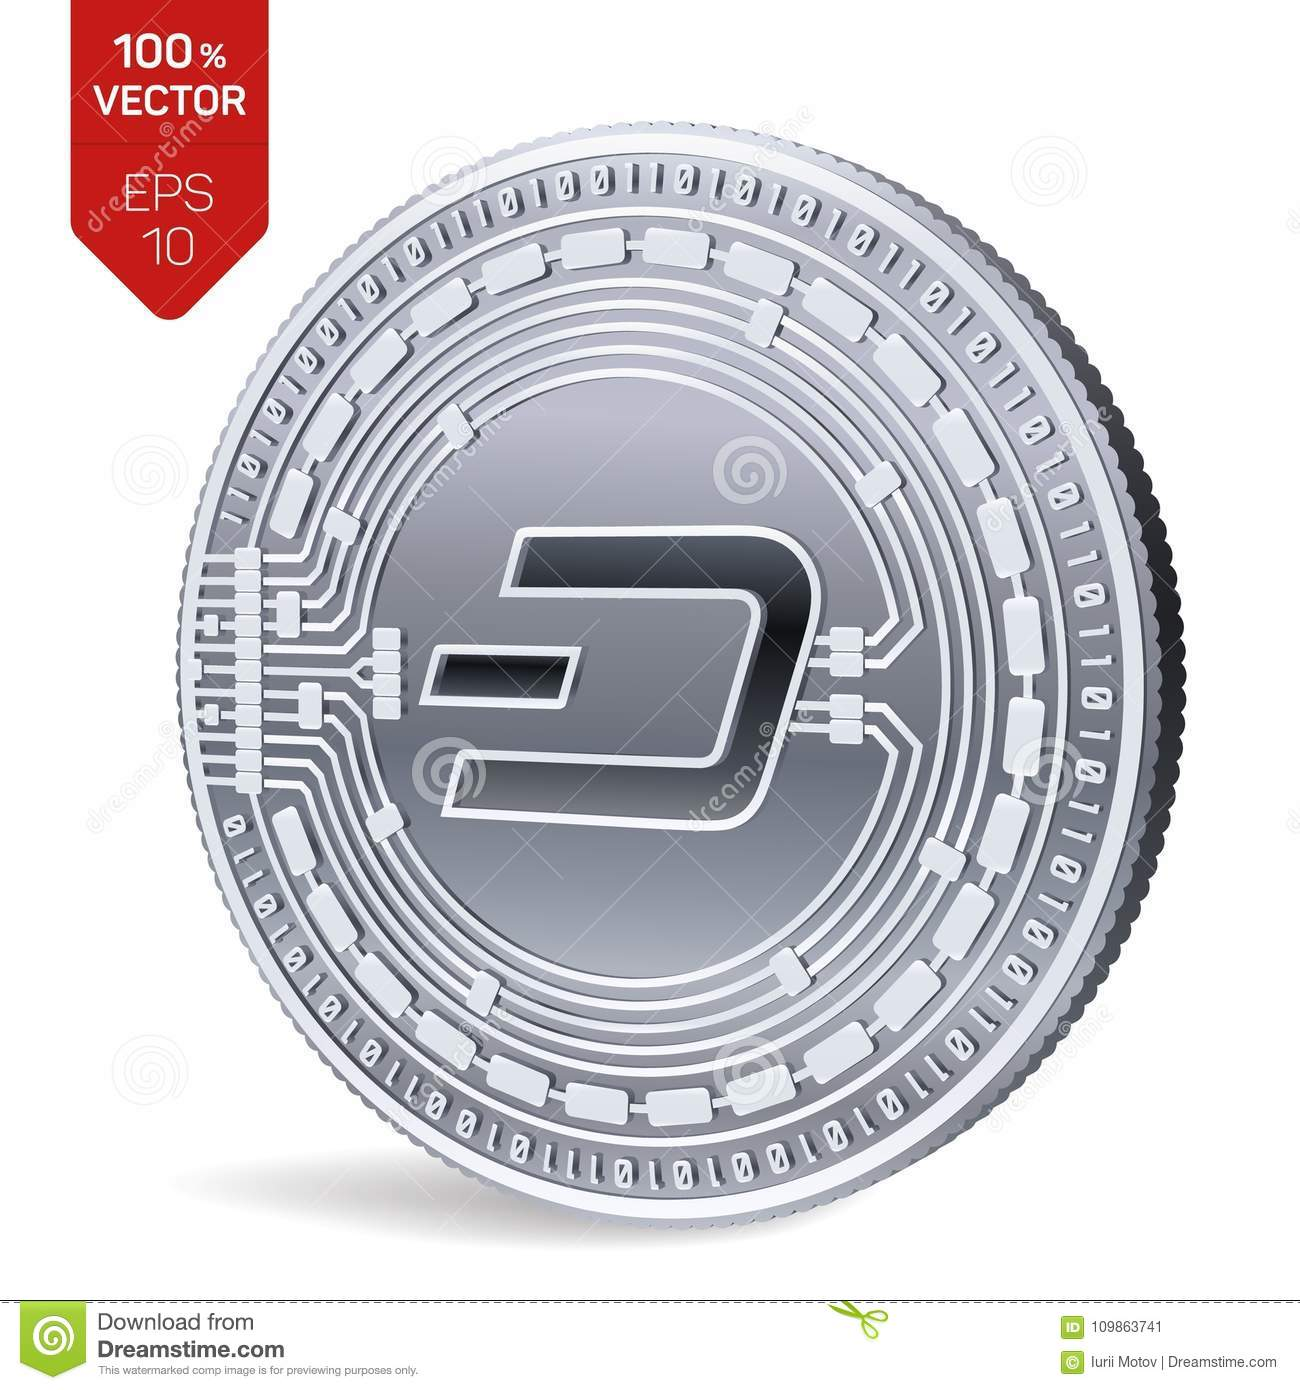 Mint coin crypto currency converter best 60 second binary options system